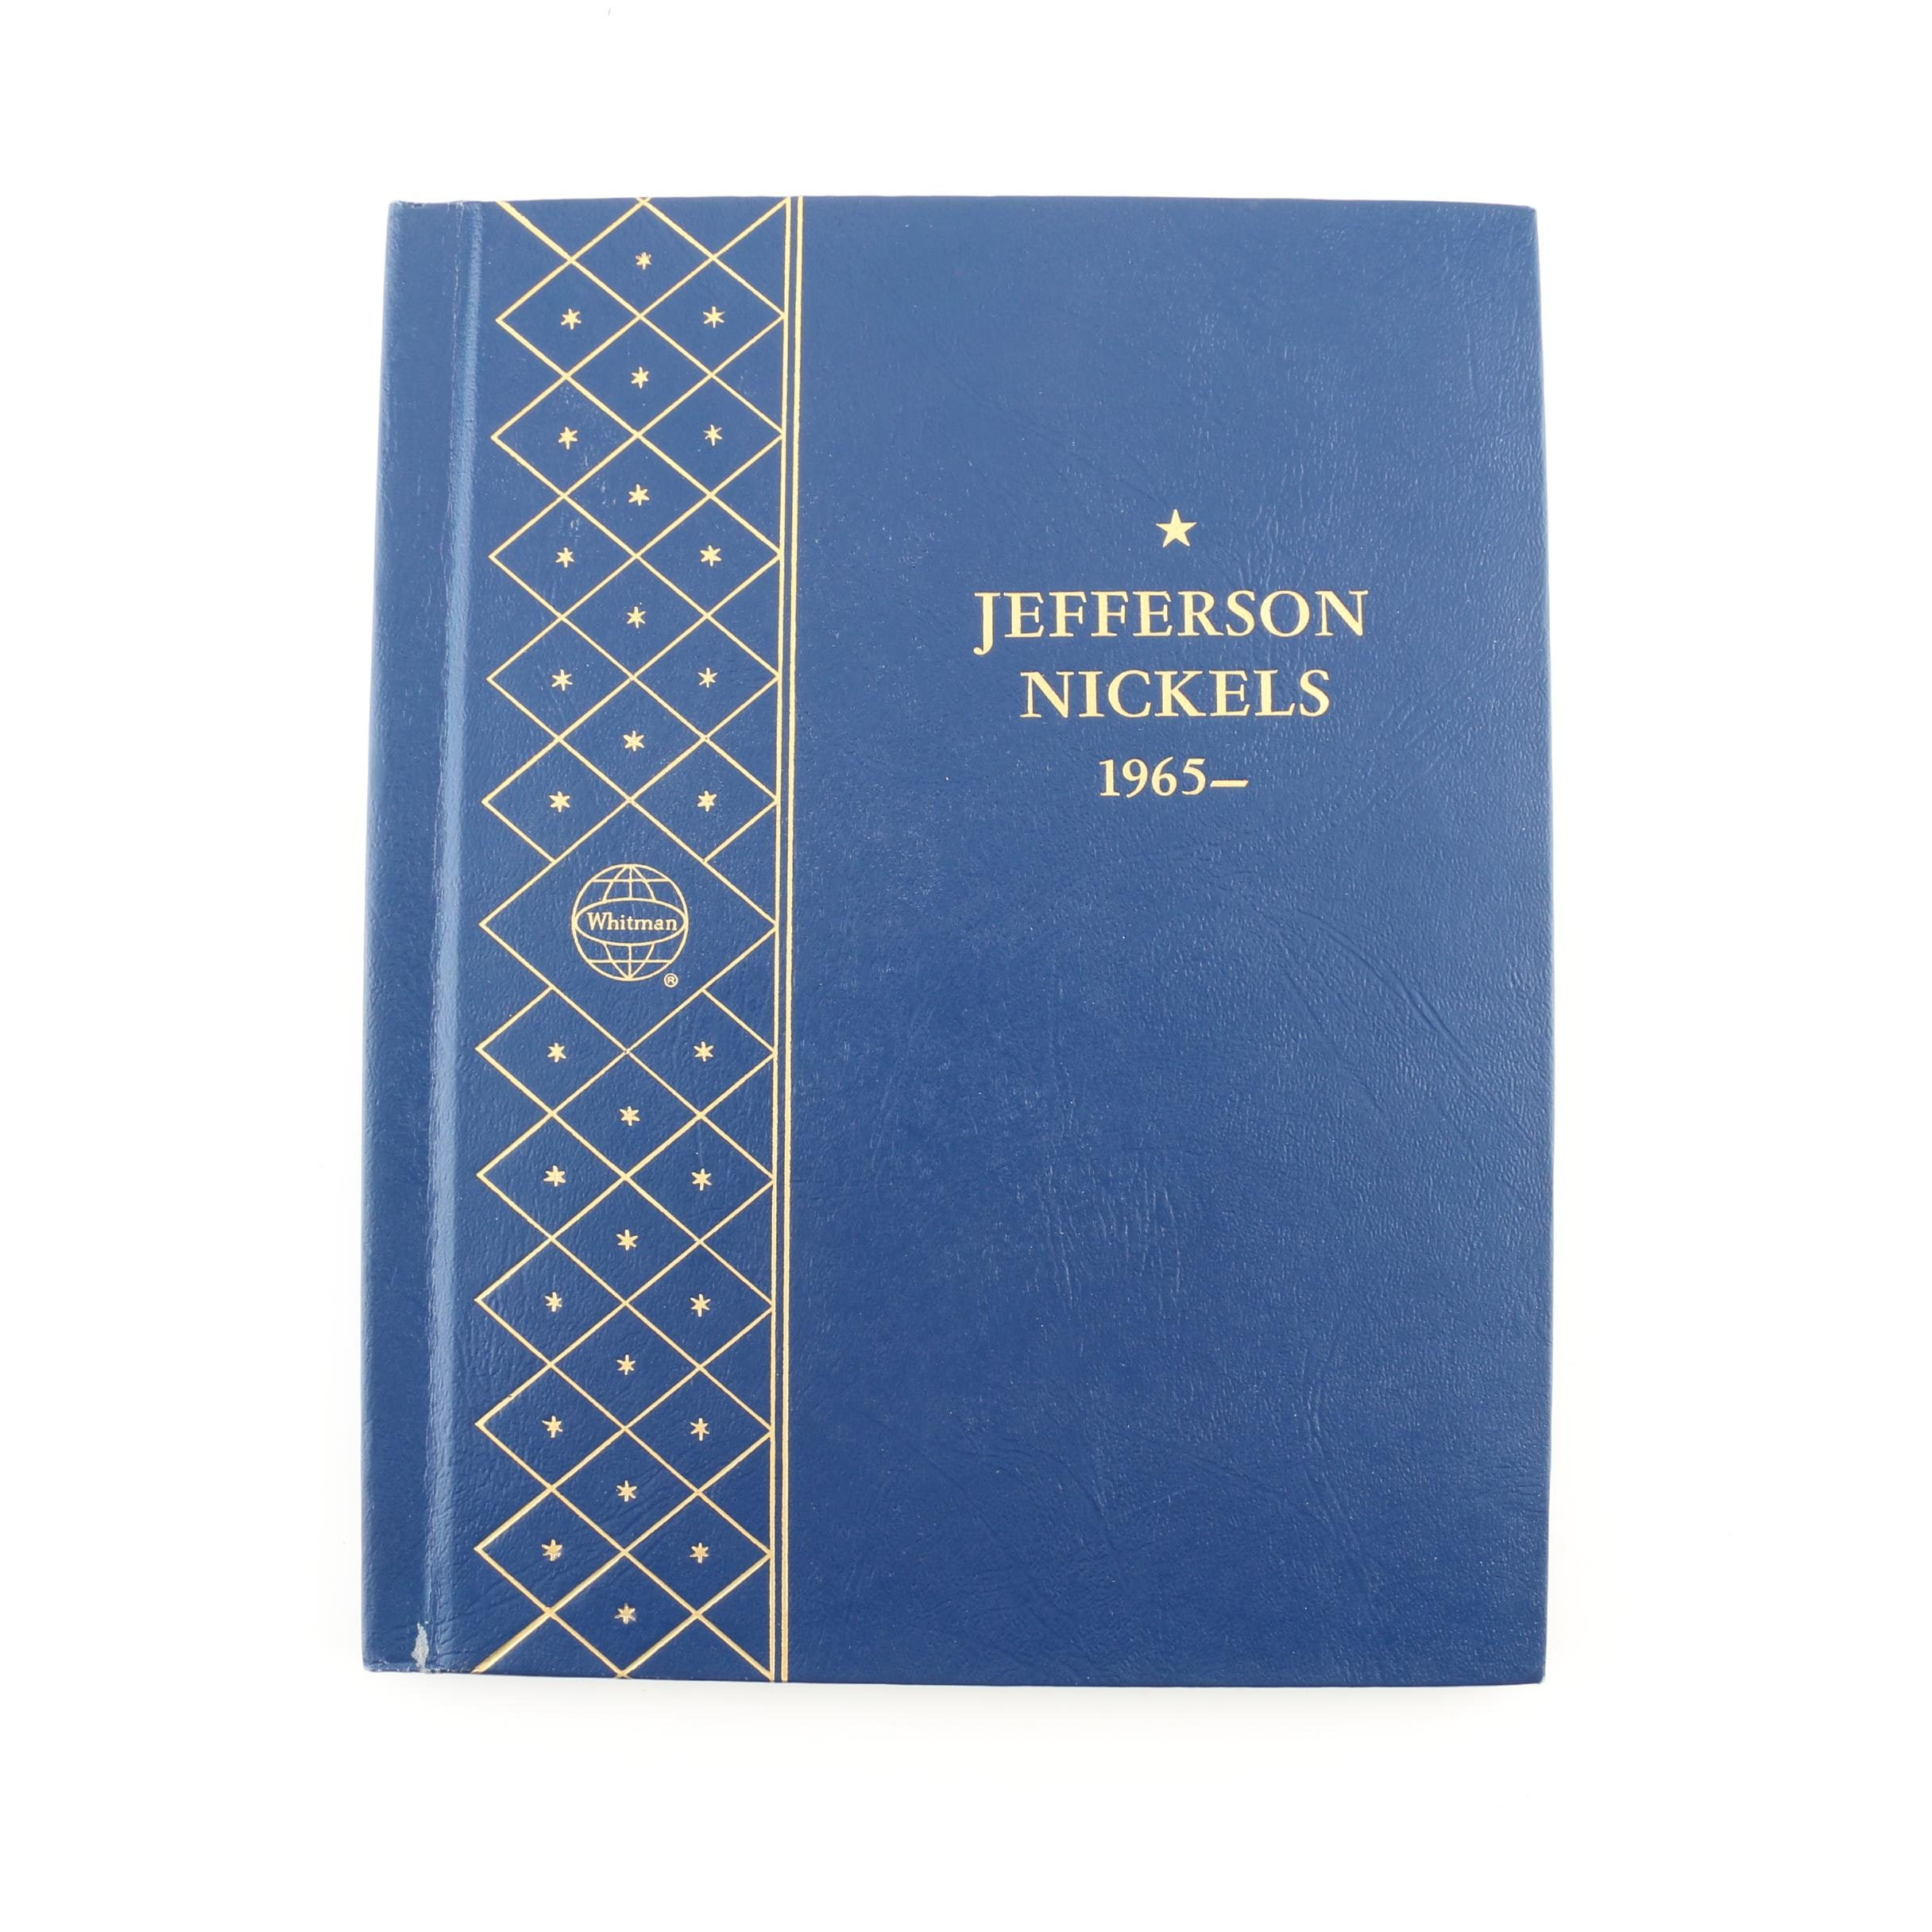 Whitman Binder of Jefferson Nickels